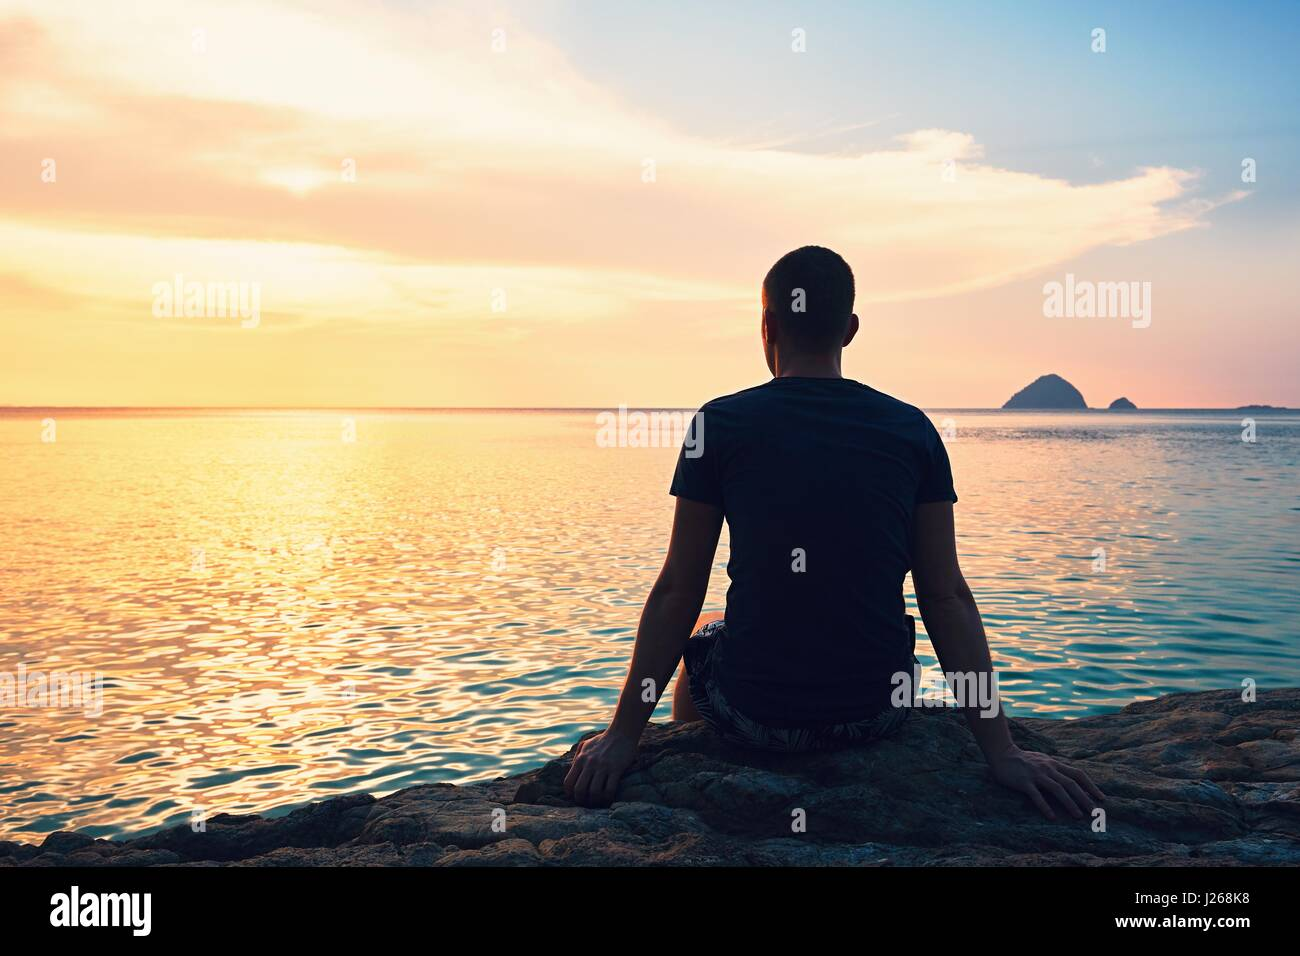 Contemplation at the beautiful sunset. Silhouette of the young man on the beach. - Stock Image